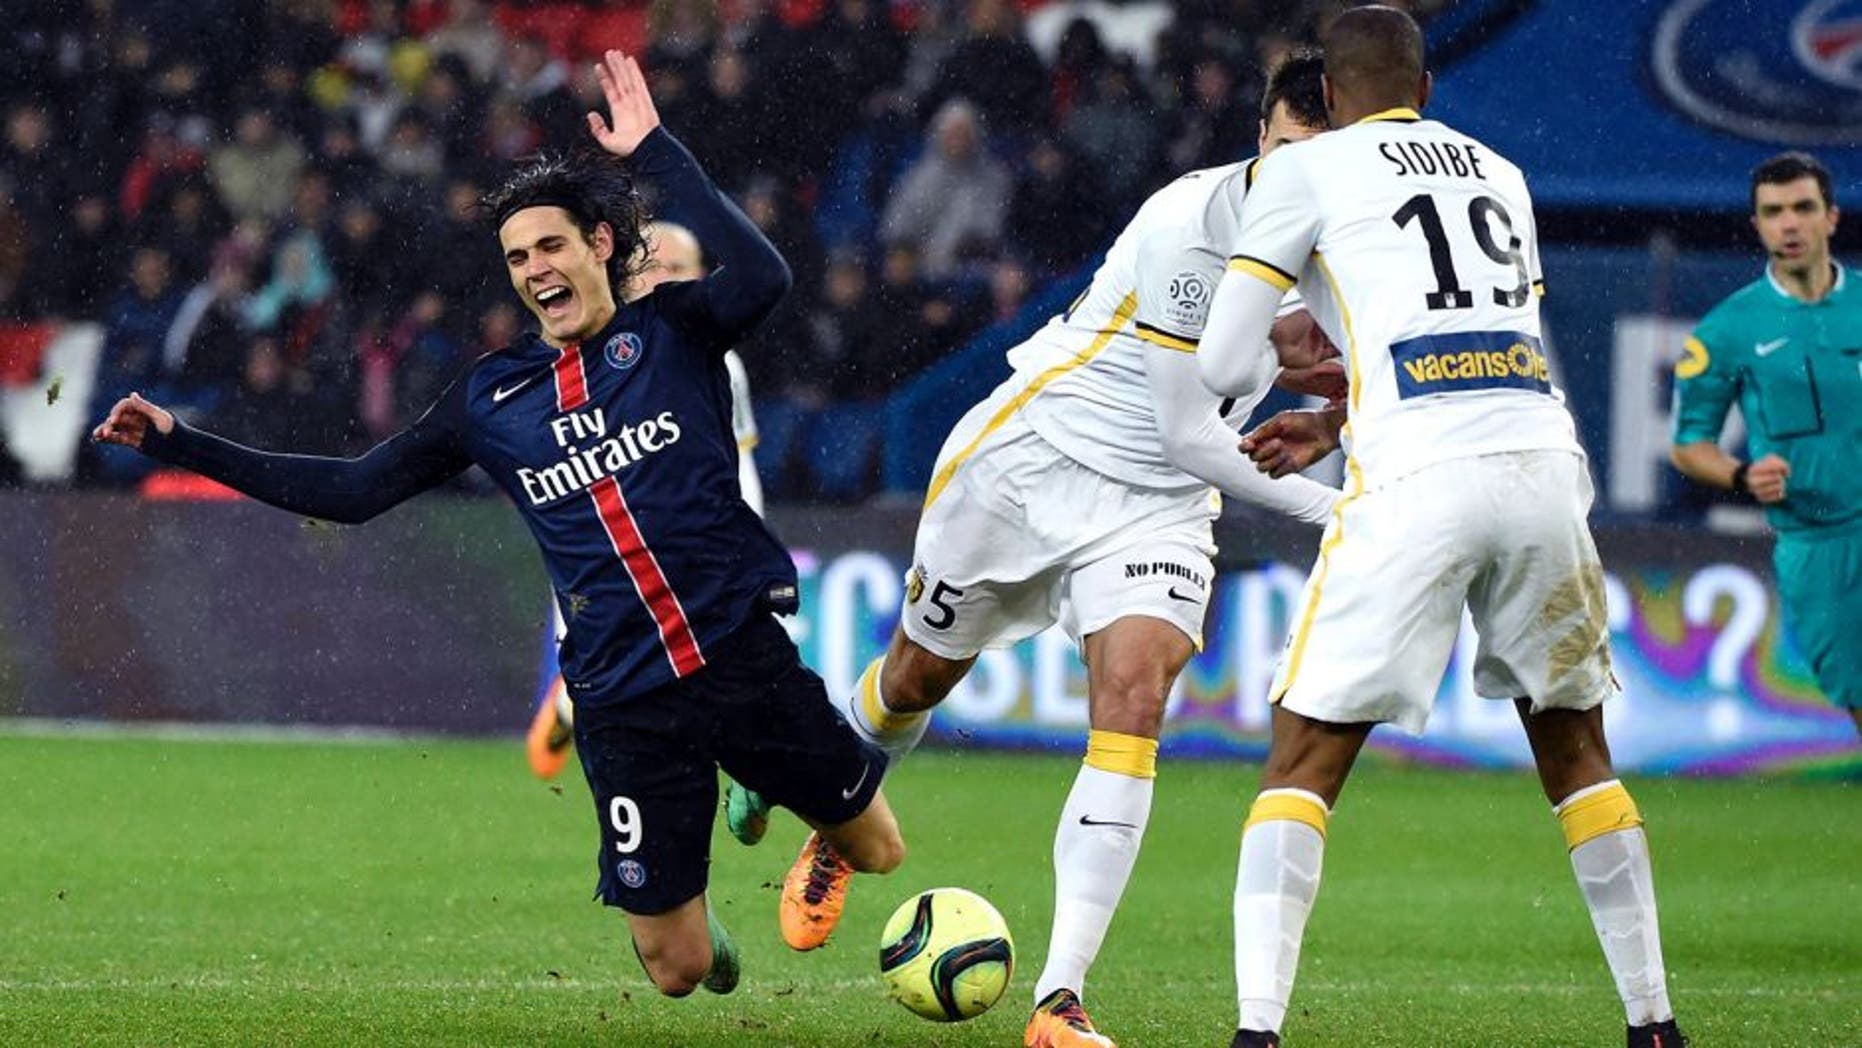 Paris Saint-Germain's Uruguayan forward Edinson Cavani (L) falls after being tackled by is tackled by Lille's Argentinian defender Renato Civelli (2nd R) during the French L1 football match between Paris Saint-Germain (PSG) and Lille (LOSC) at the Parc des Princes stadium in Paris, on February 13, 2016. AFP PHOTO / MIGUEL MEDINA / AFP / MIGUEL MEDINA (Photo credit should read MIGUEL MEDINA/AFP/Getty Images)